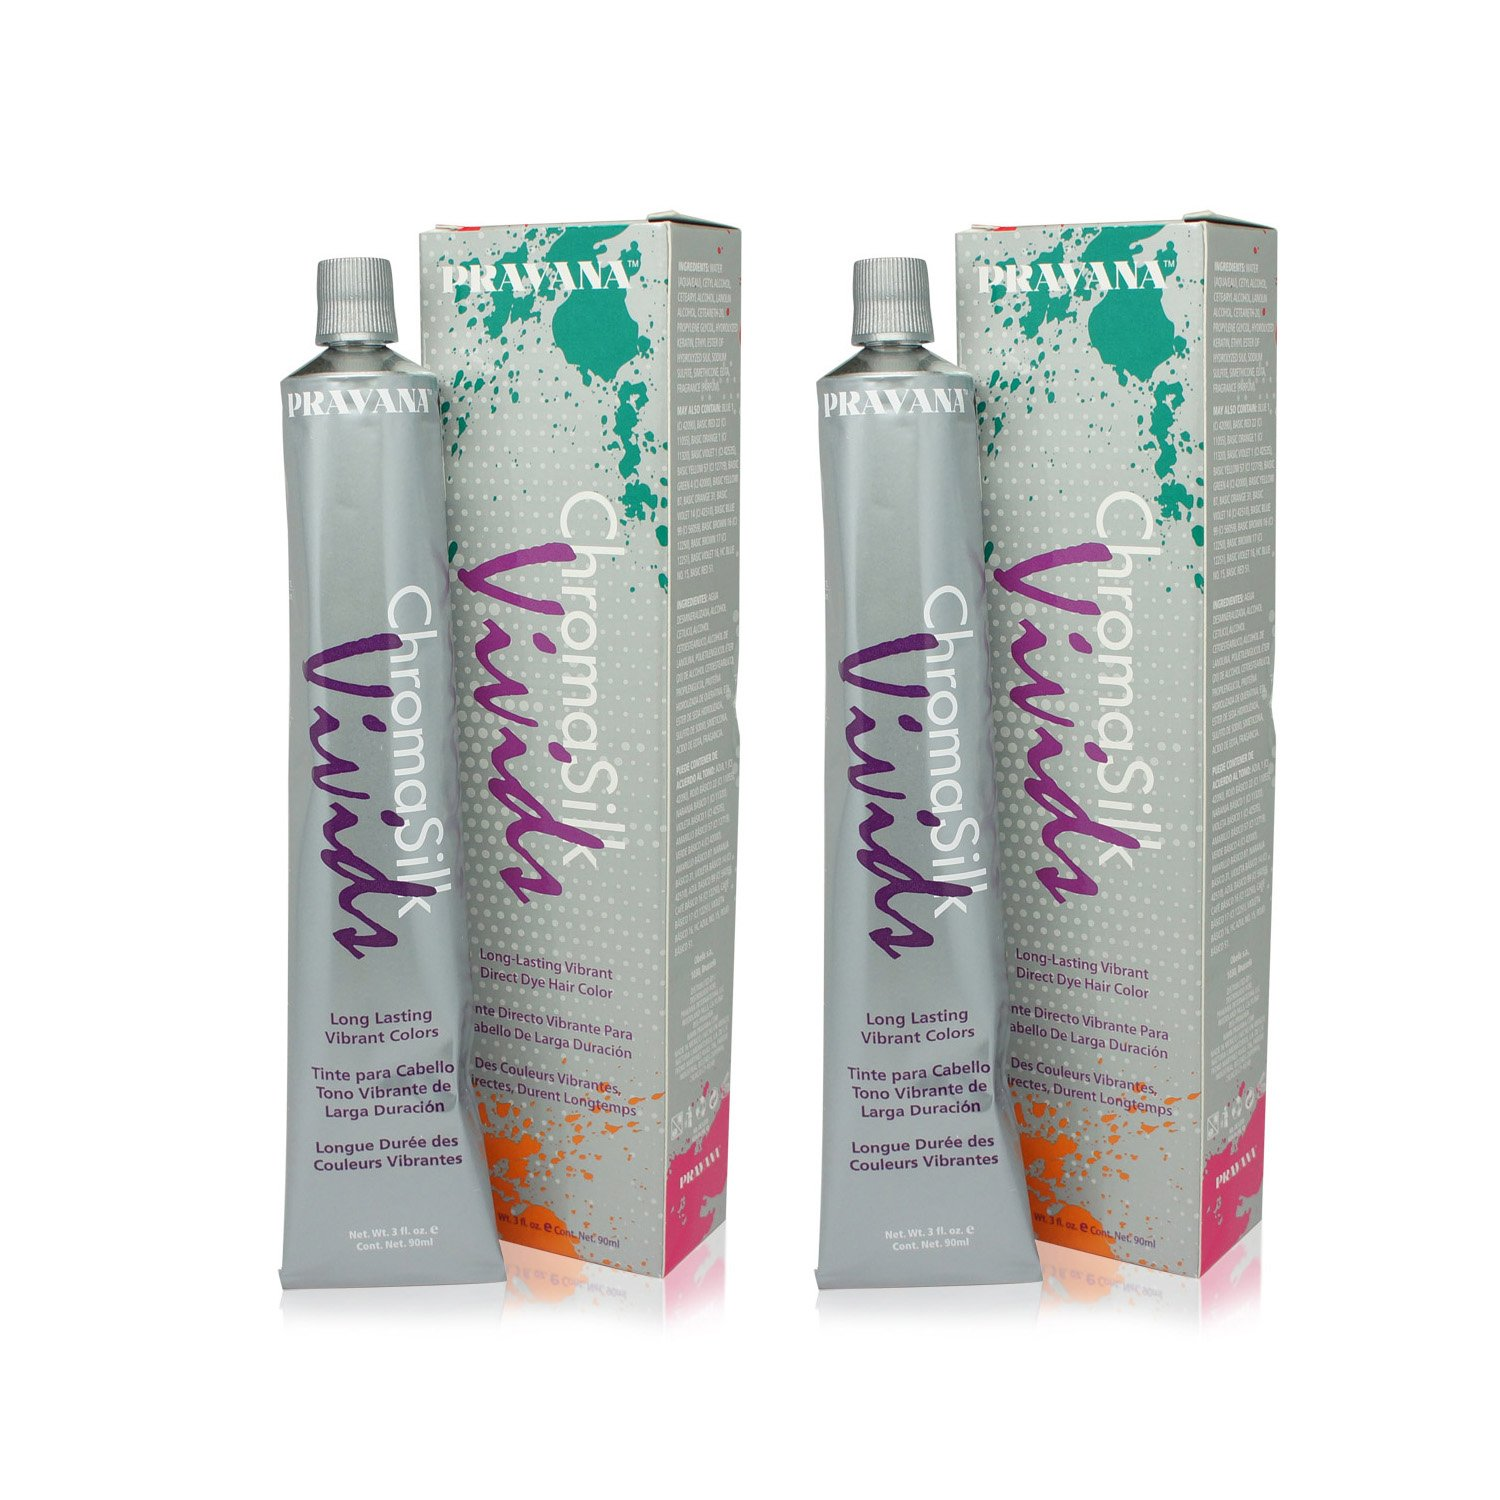 Pravana ChromaSilk Vivids (Locked in Pink), 3 Fl 0z - 2 Pack